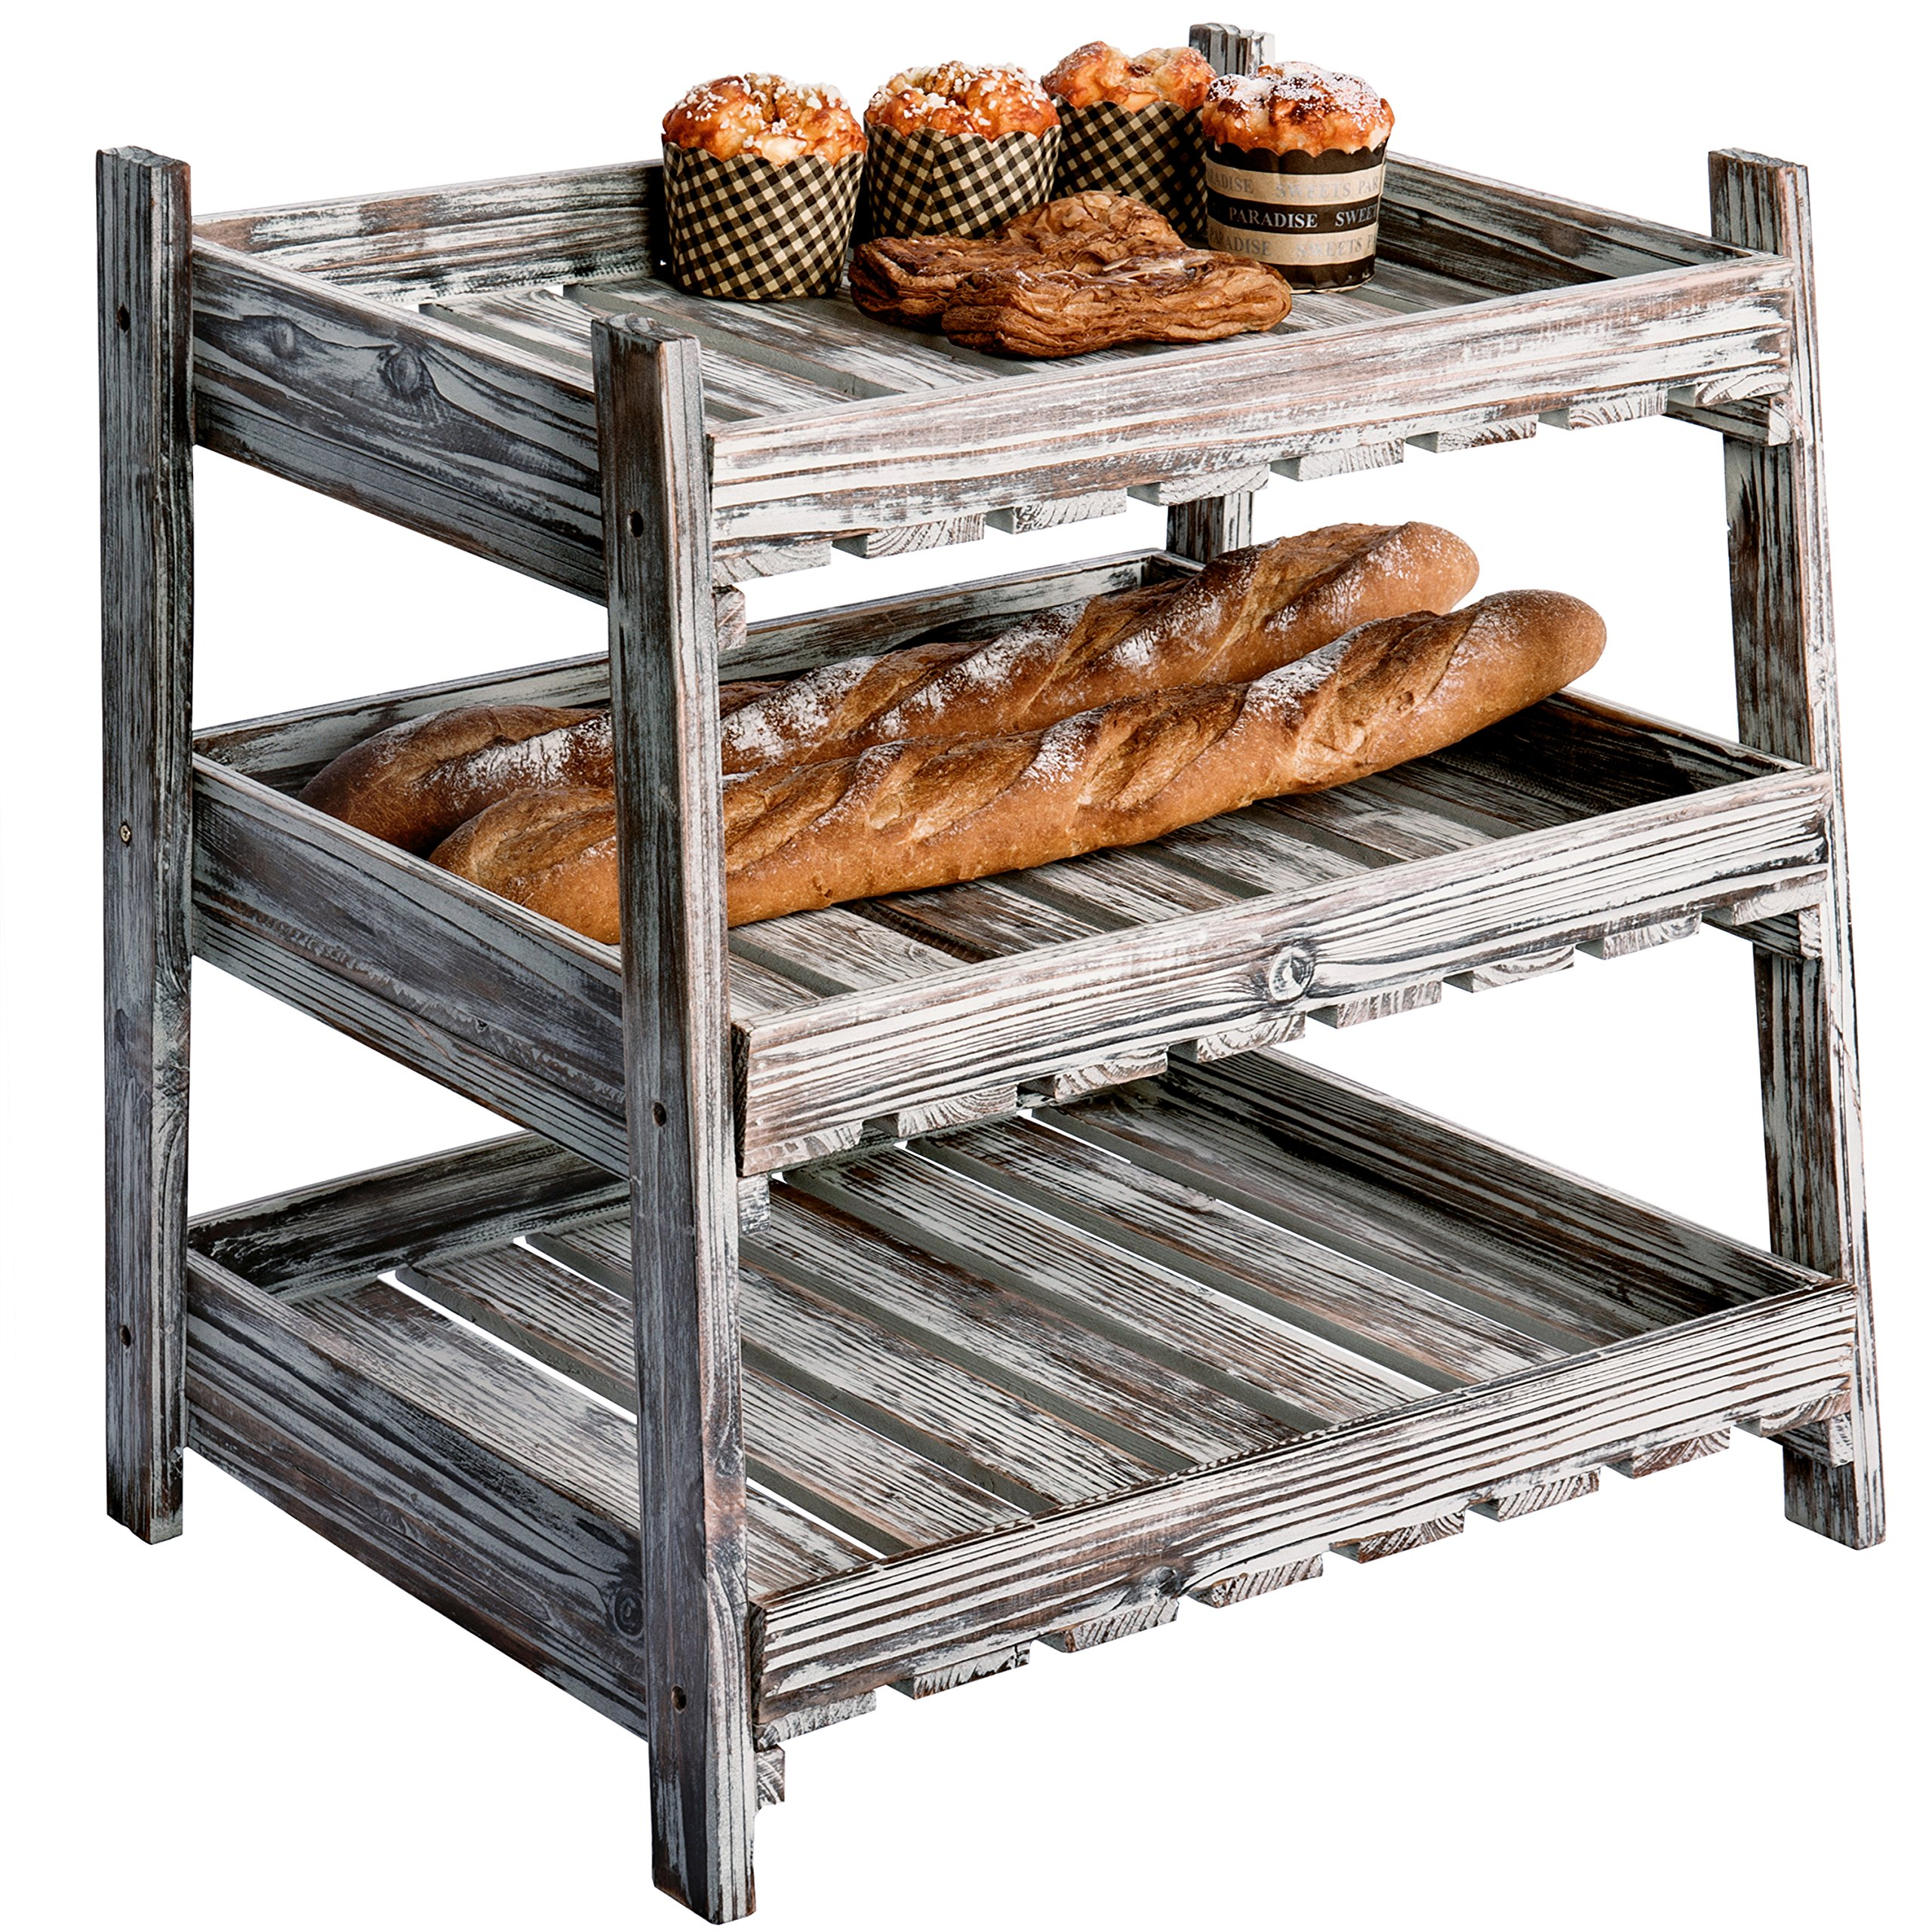 Country Rustic Wood Crate Design Display Rack with 3 Cascading Shelves